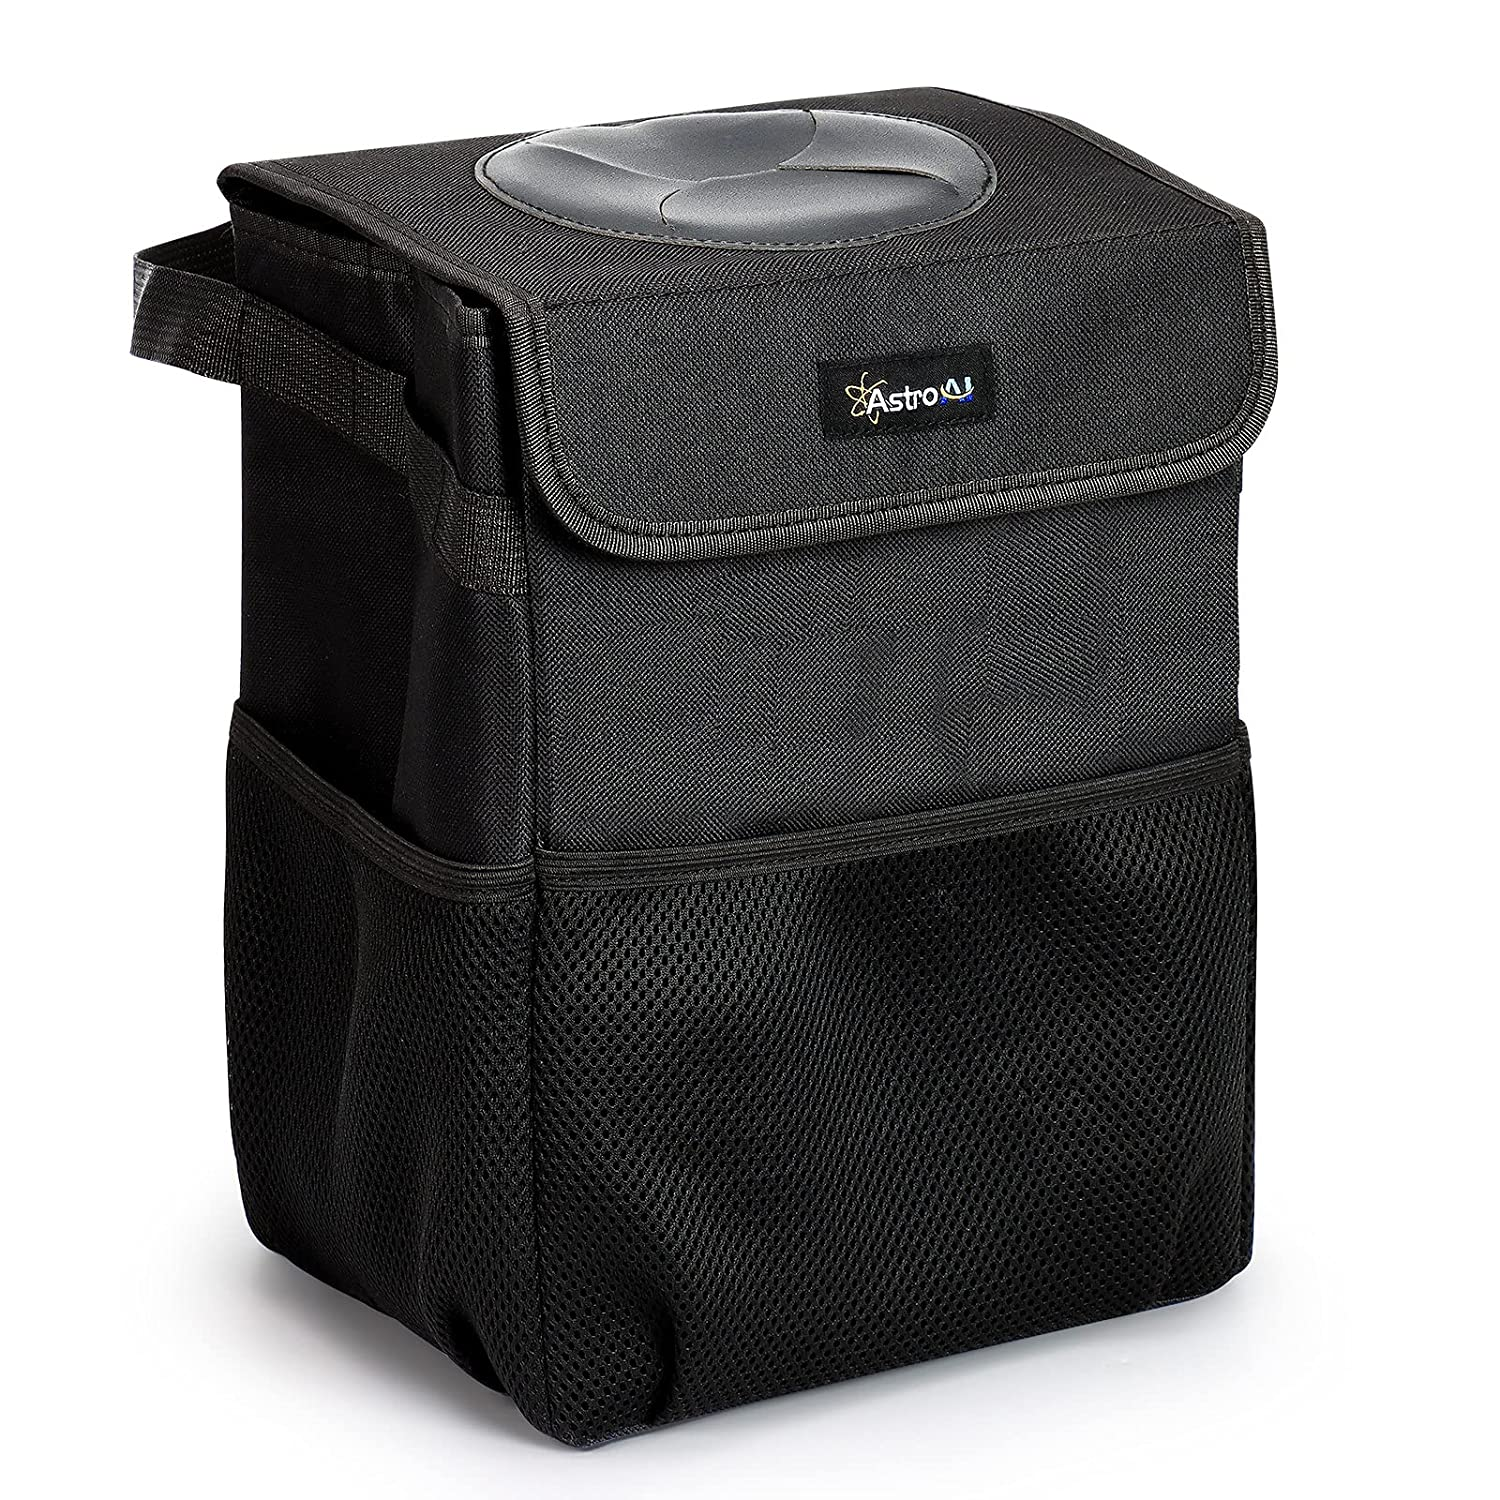 AstroAI Car unisex Trash Can with Lid and Storage Leak-Proof Pockets Wa Max 46% OFF